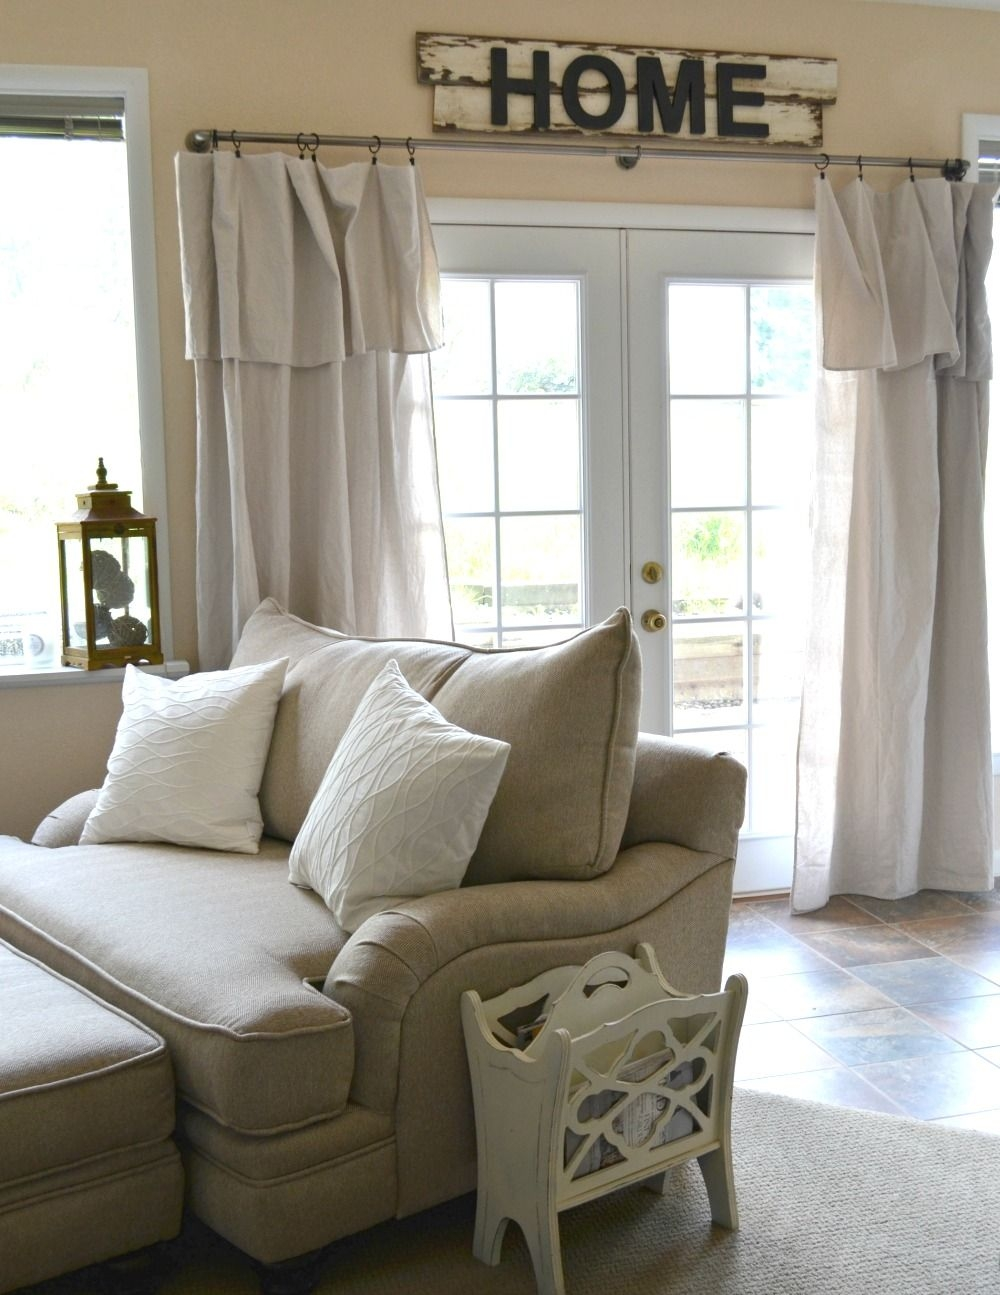 Stupendous Country Style Curtains Living Room On Nice-looking Simple & Cozy Basement tour Sarah Joy On Country Style Curtains Living Room